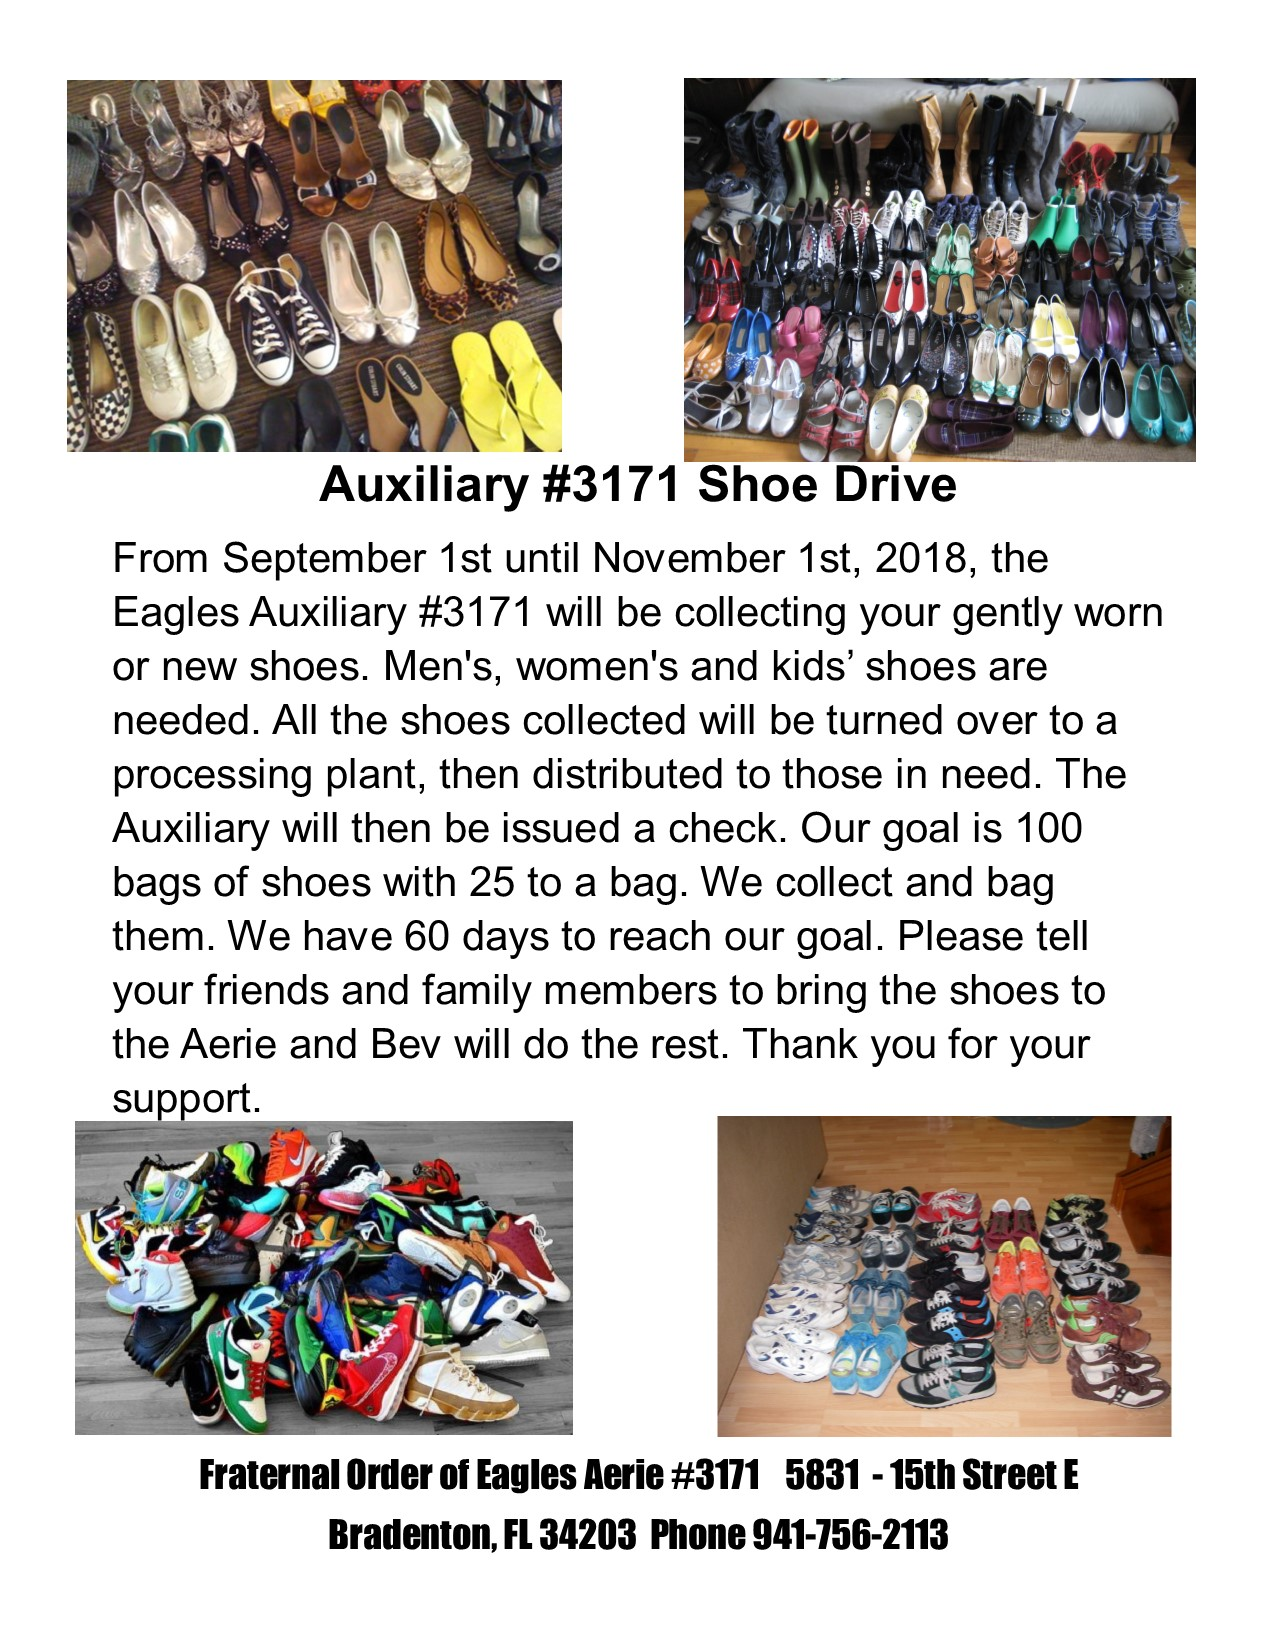 Auxiliary Shoe Drive 2018